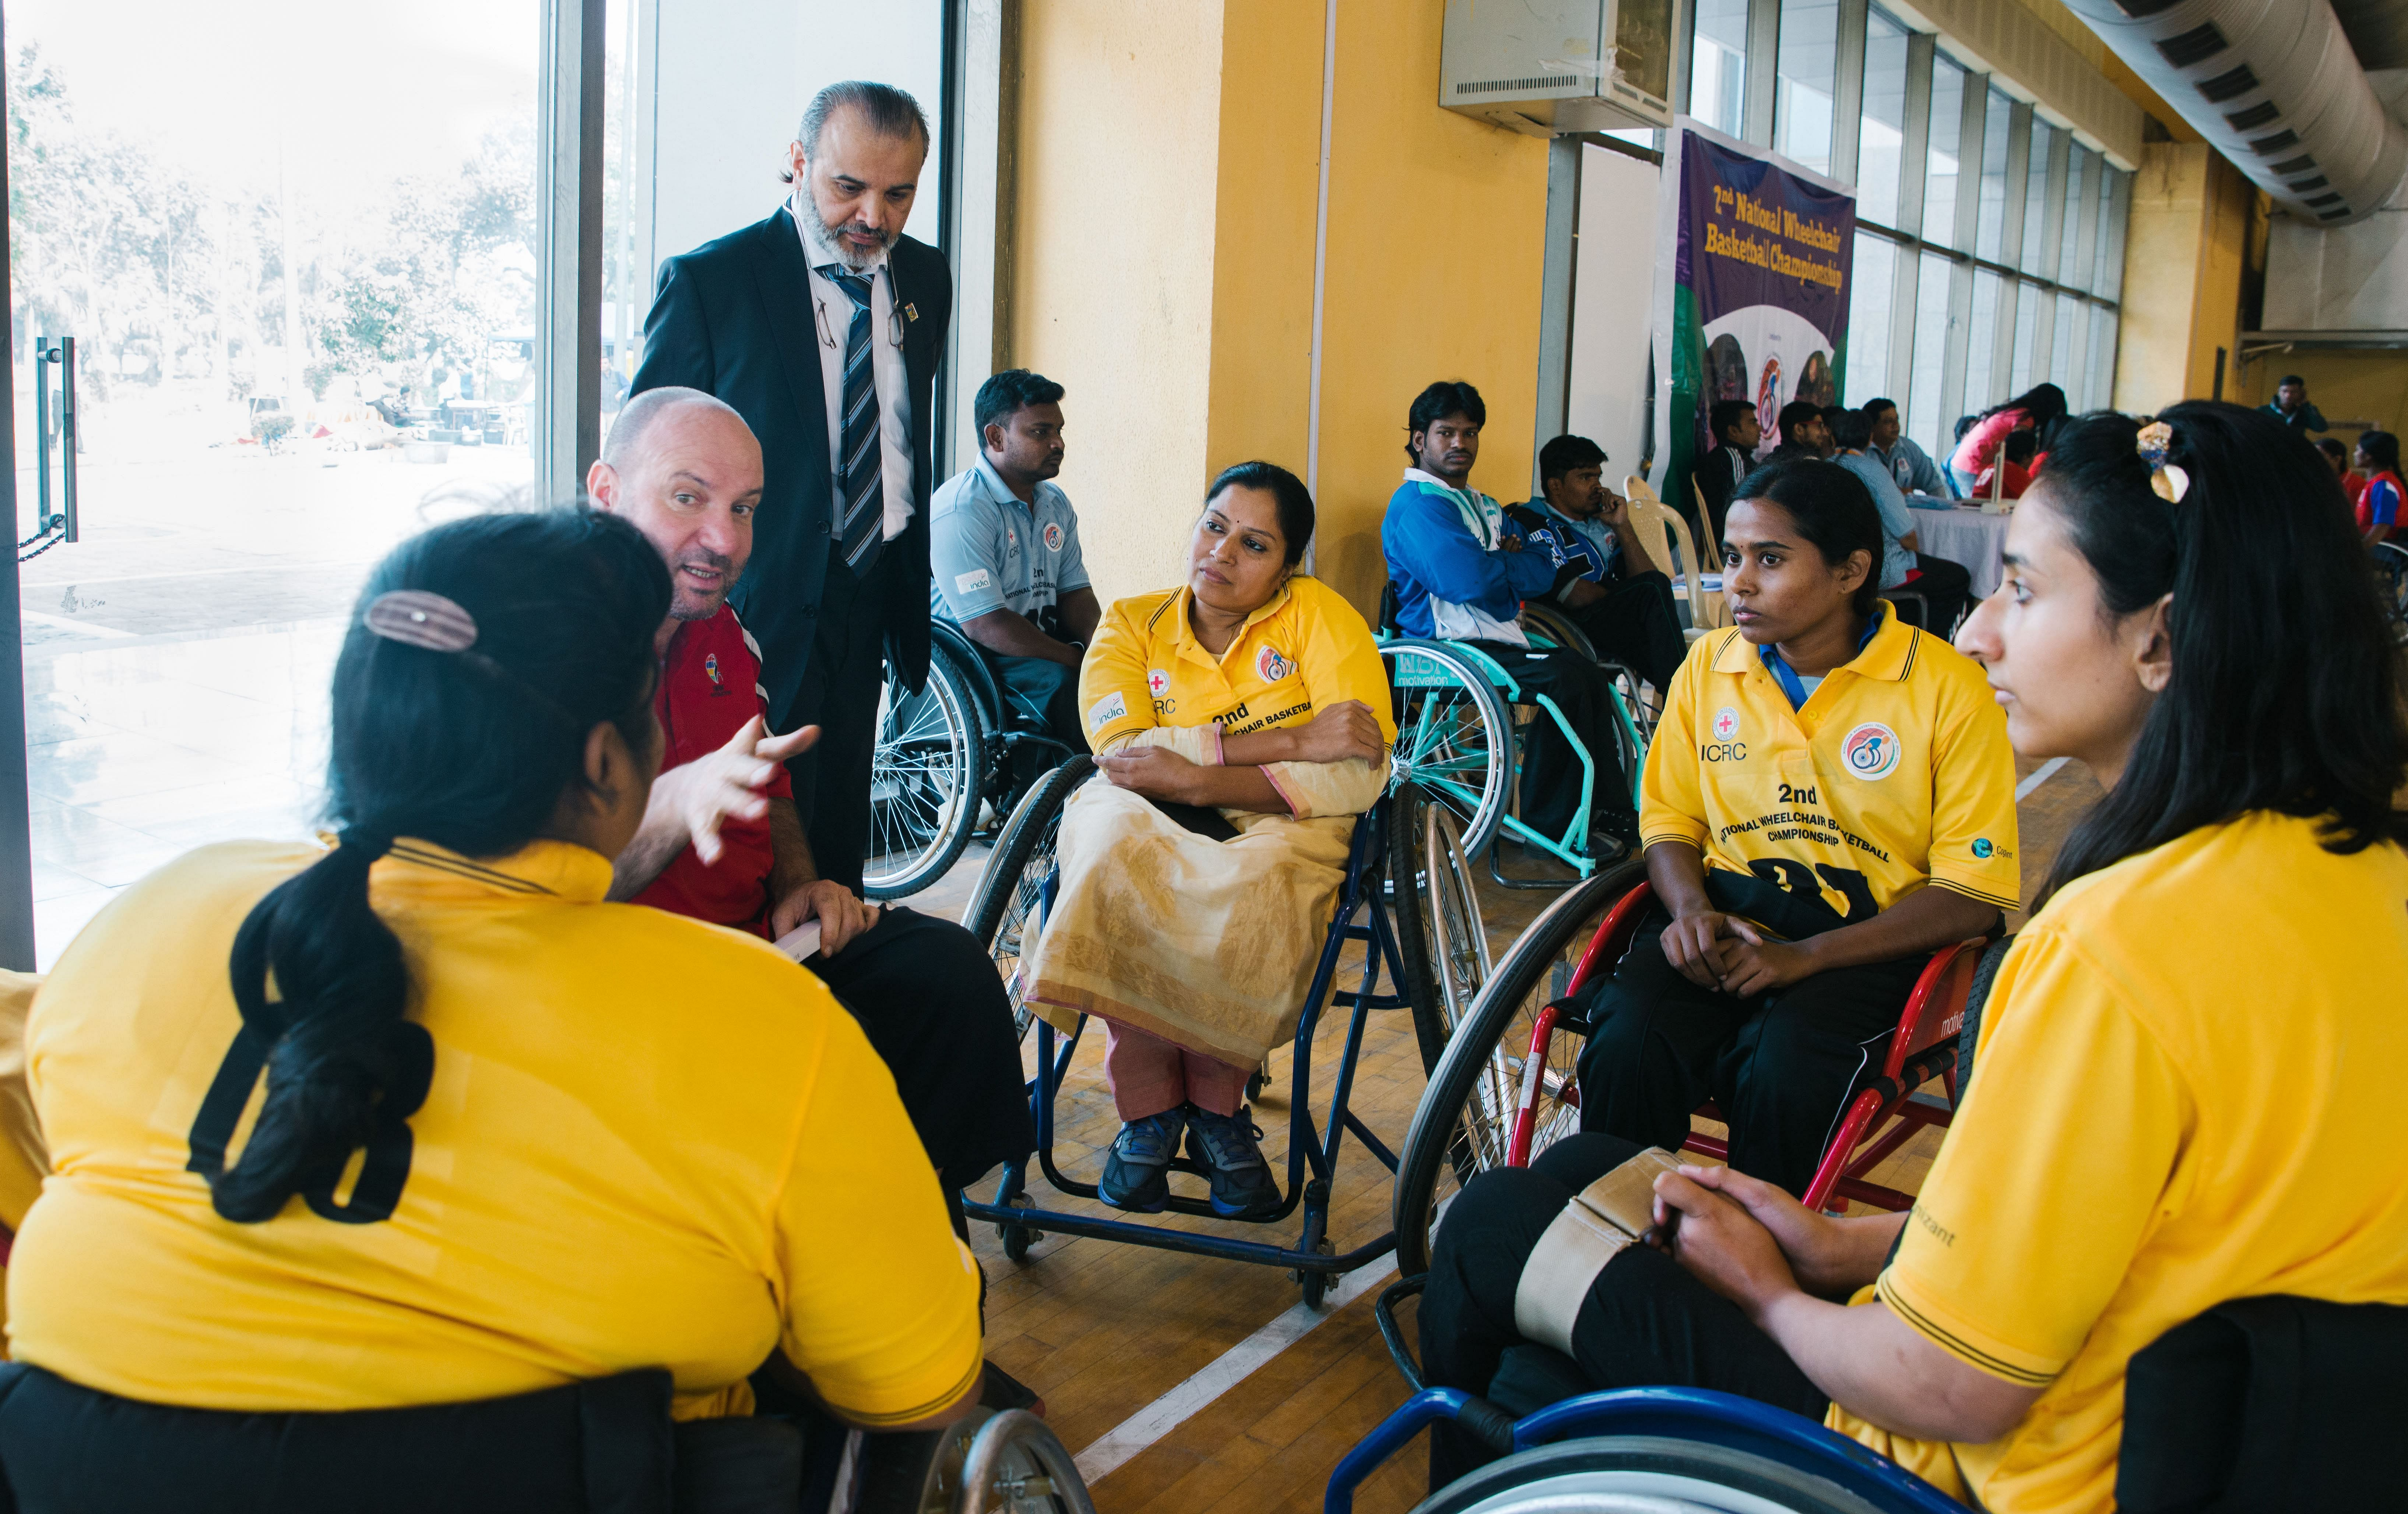 Madhavi with the first women's team at the National Wheelchair Basketball Tournament, pay attention to their coach during a timeout amidst the match.